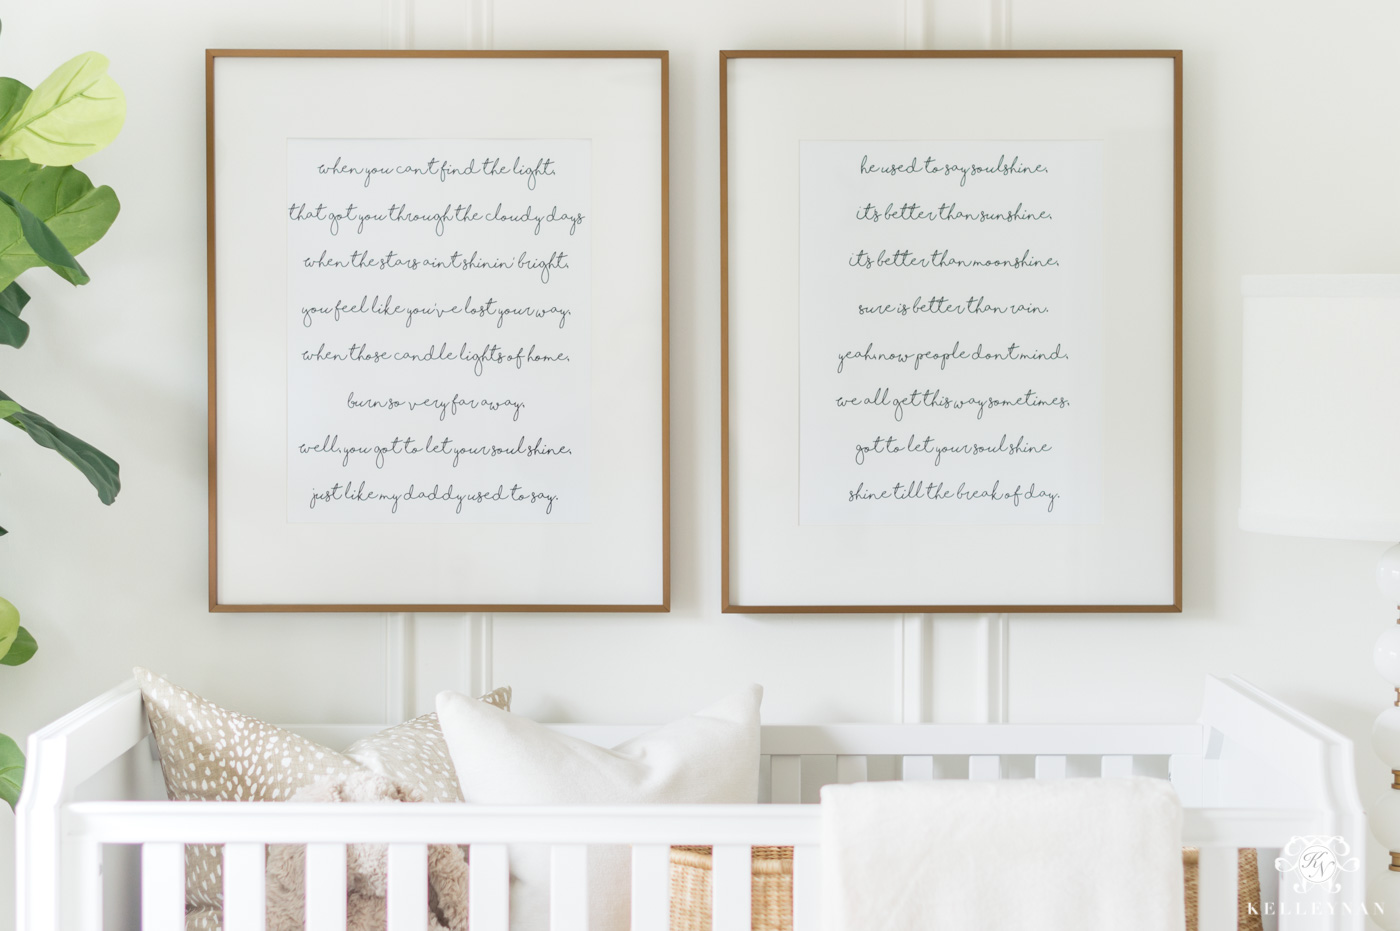 Soulshine framed lyrics above nursery crib